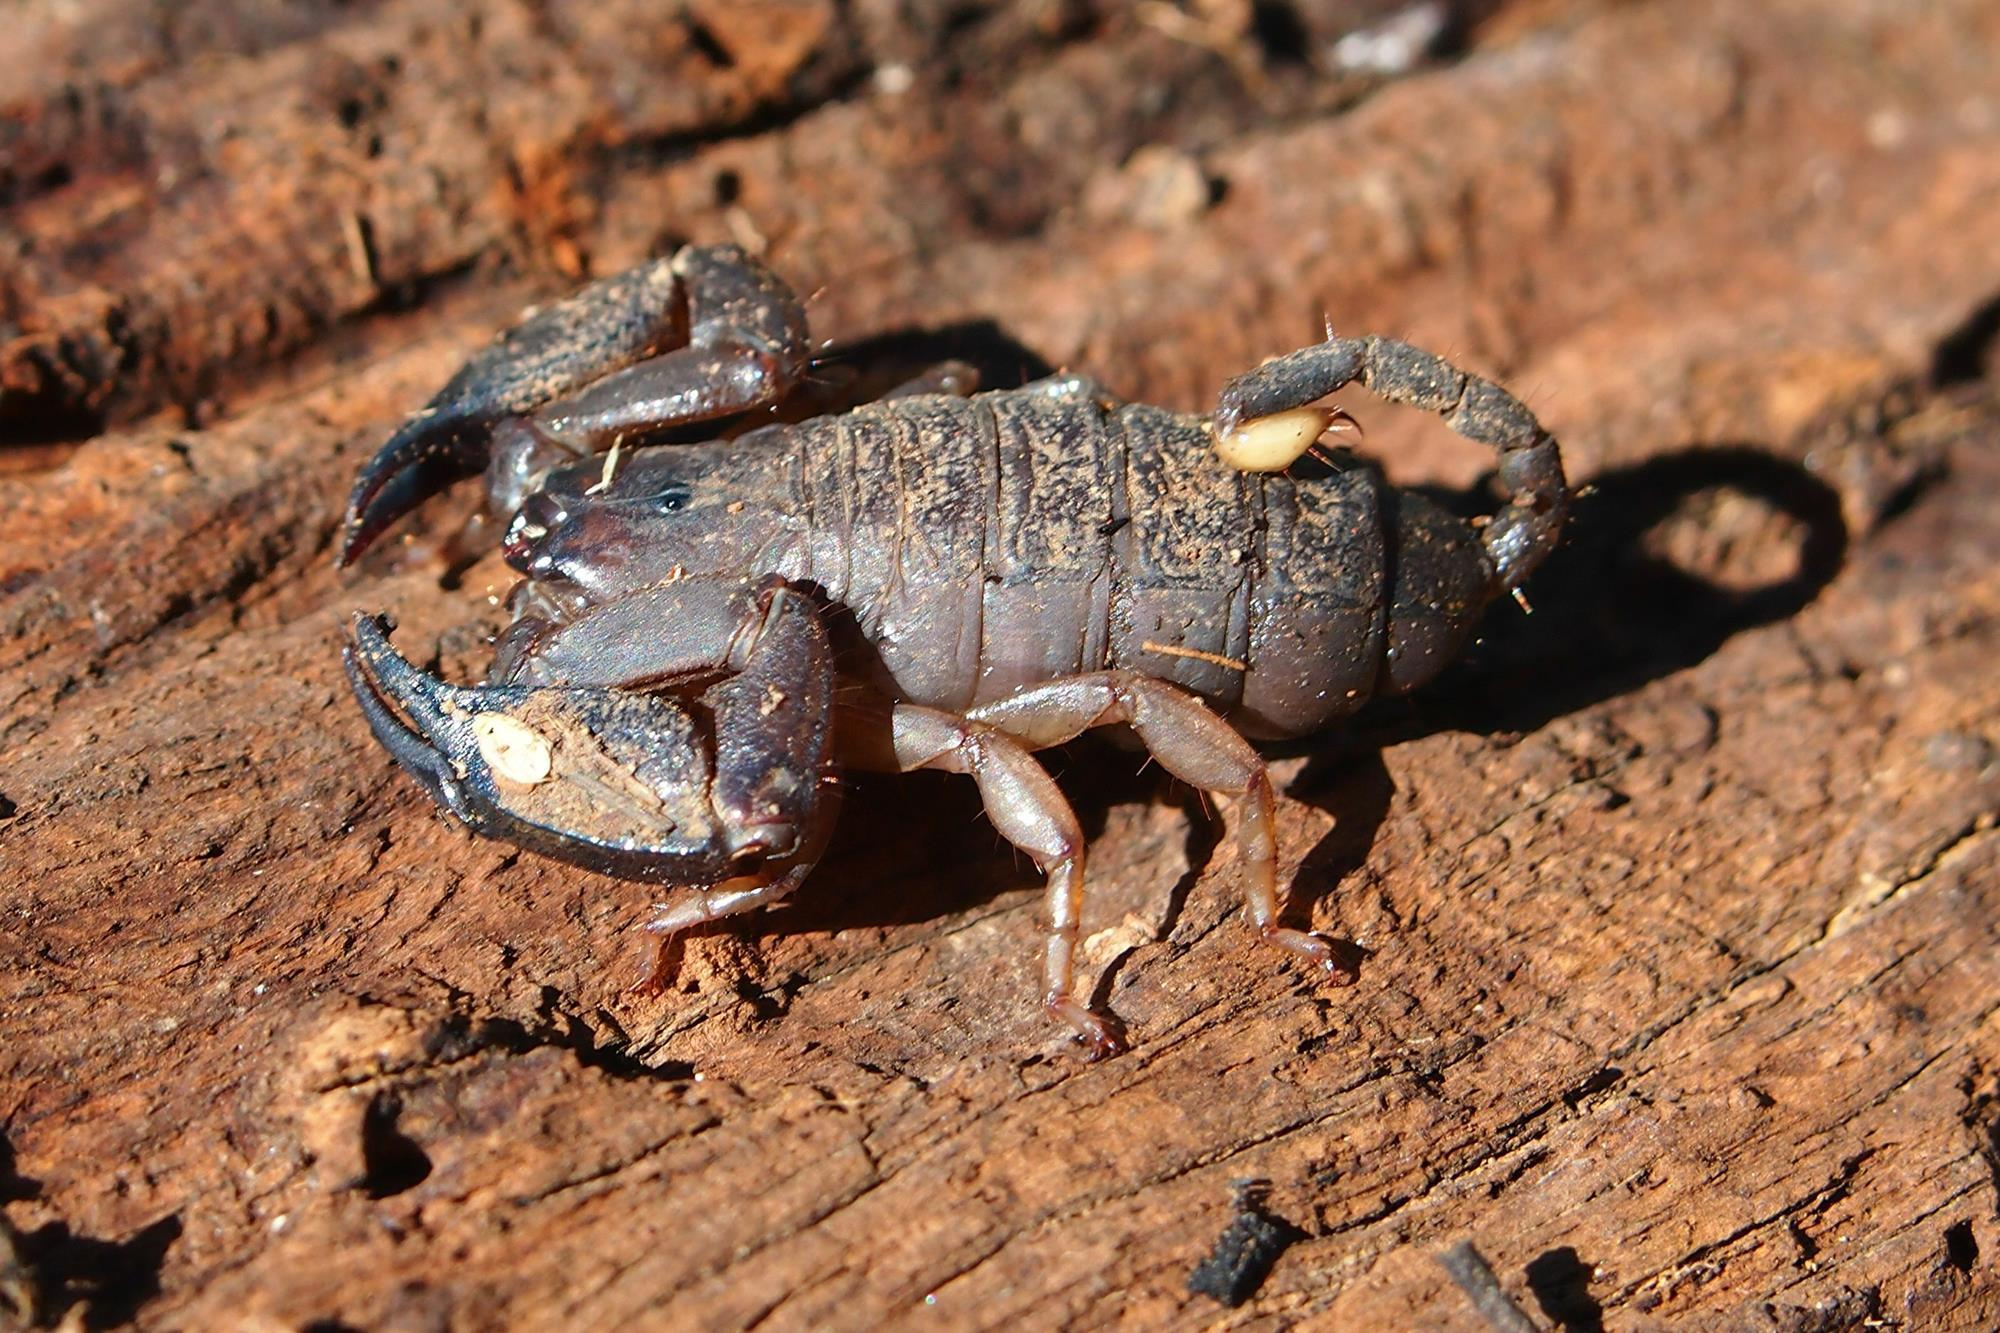 Scorpion fine-tunes its venom to ward off predators